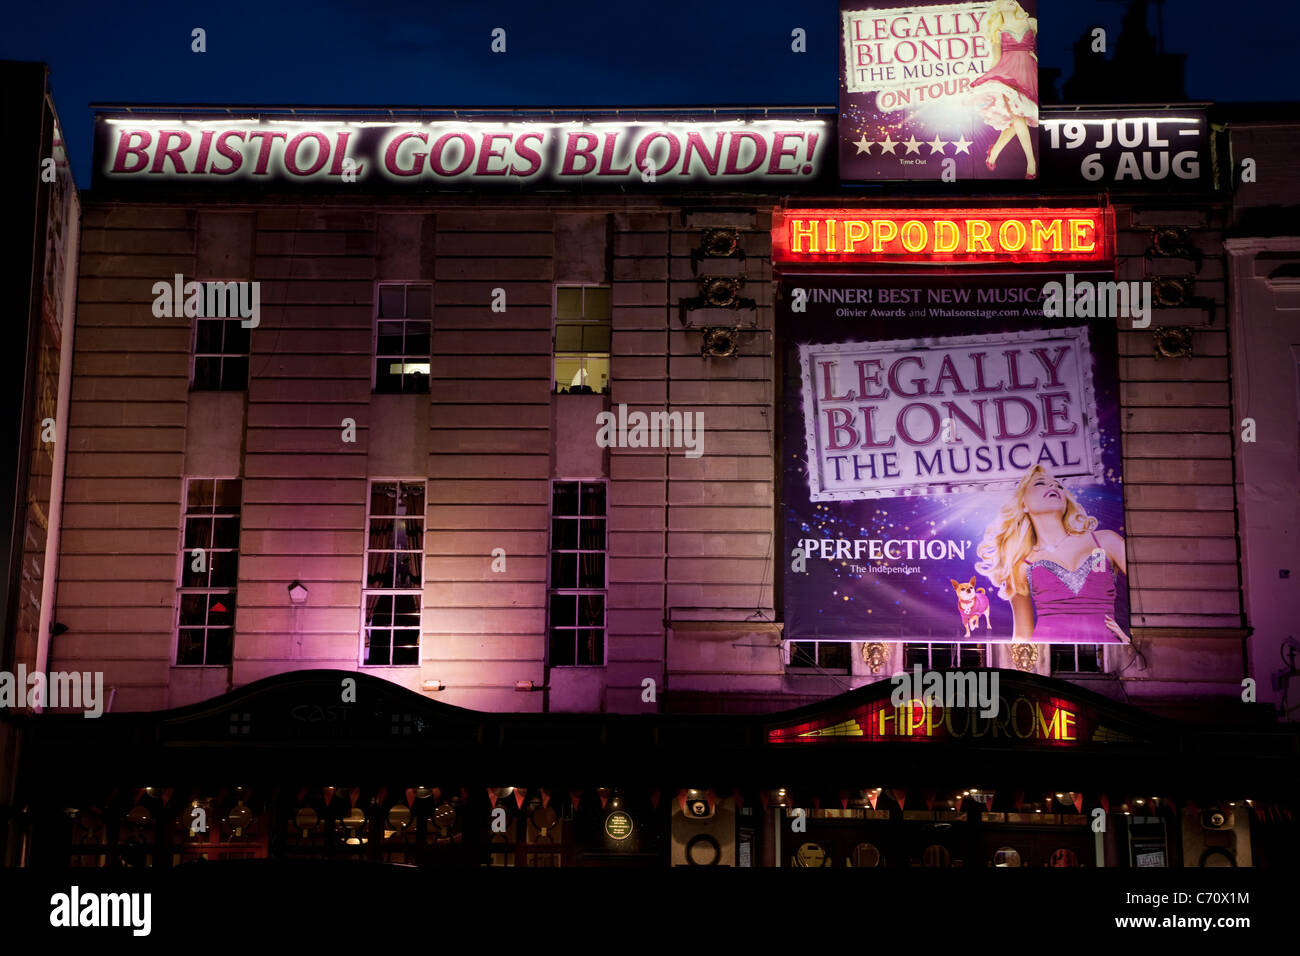 Legally Blonde at the Hippodrome Theatre in Bristol, England, UK - Stock Image